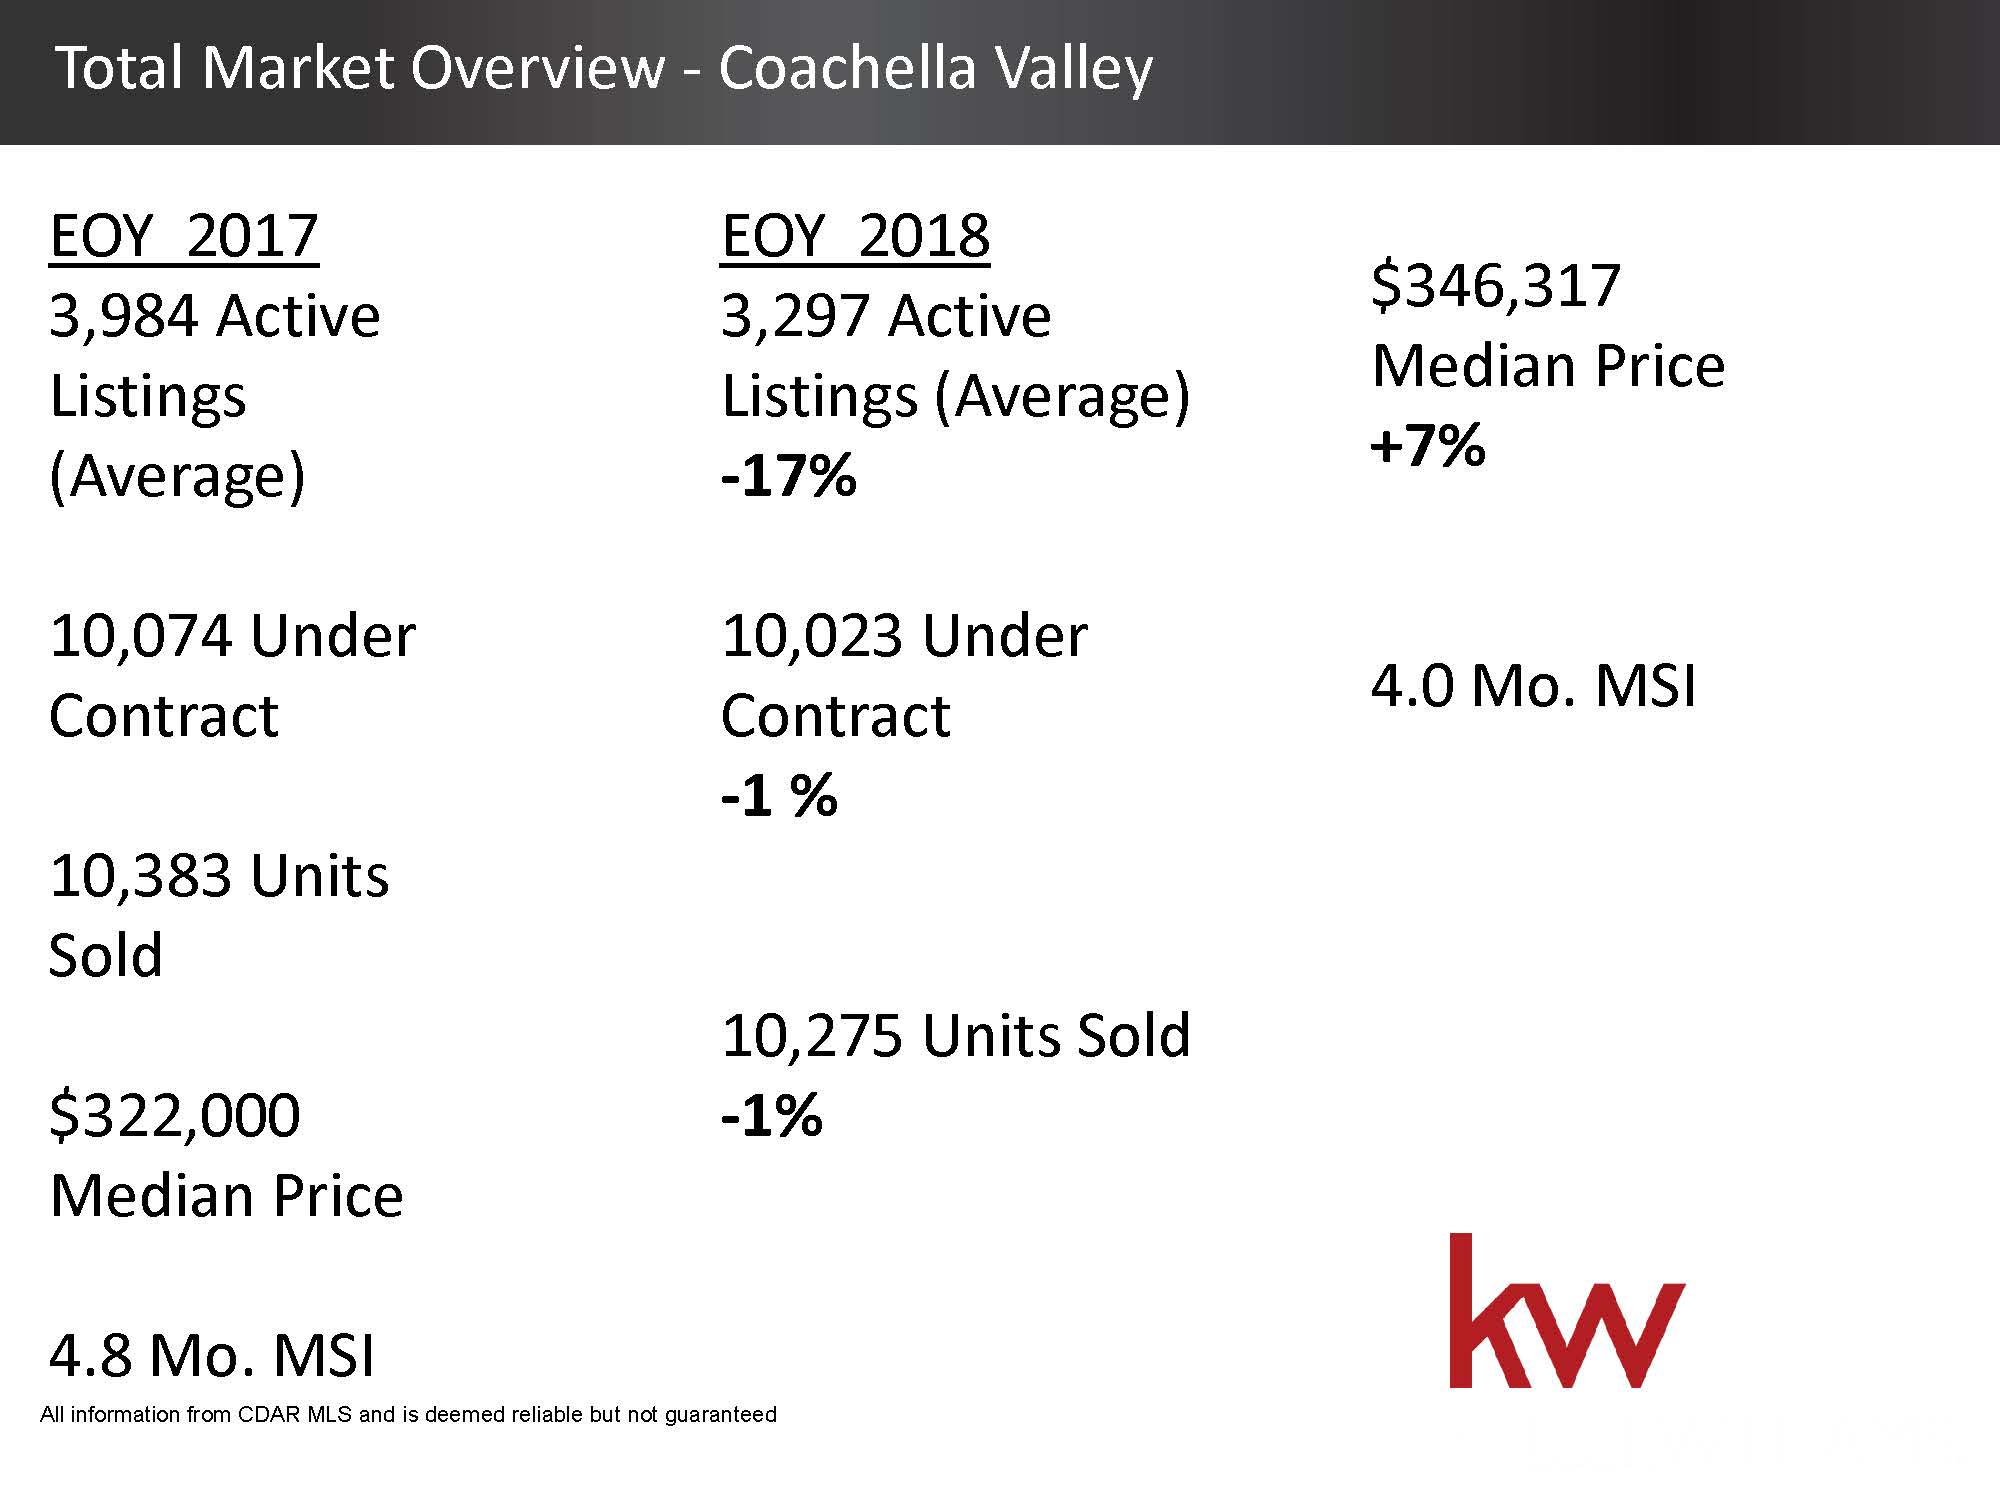 Total Housing Market 2018 Overview - Coachella Valley